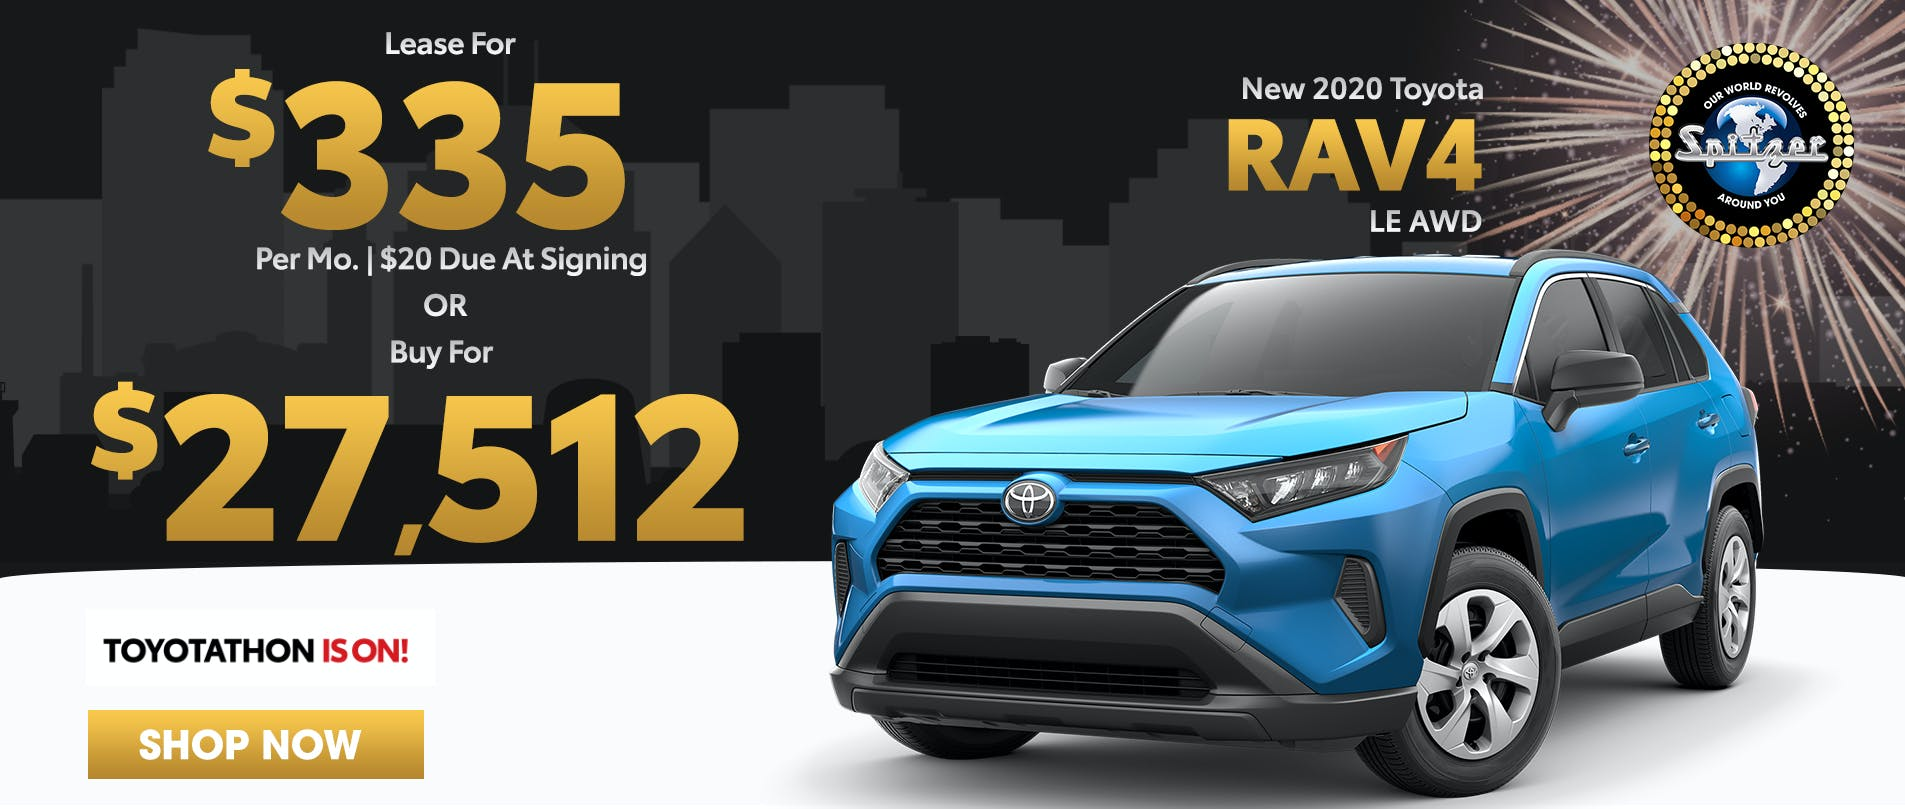 RAV4 | Lease for $335 per mo or buy for $27,512